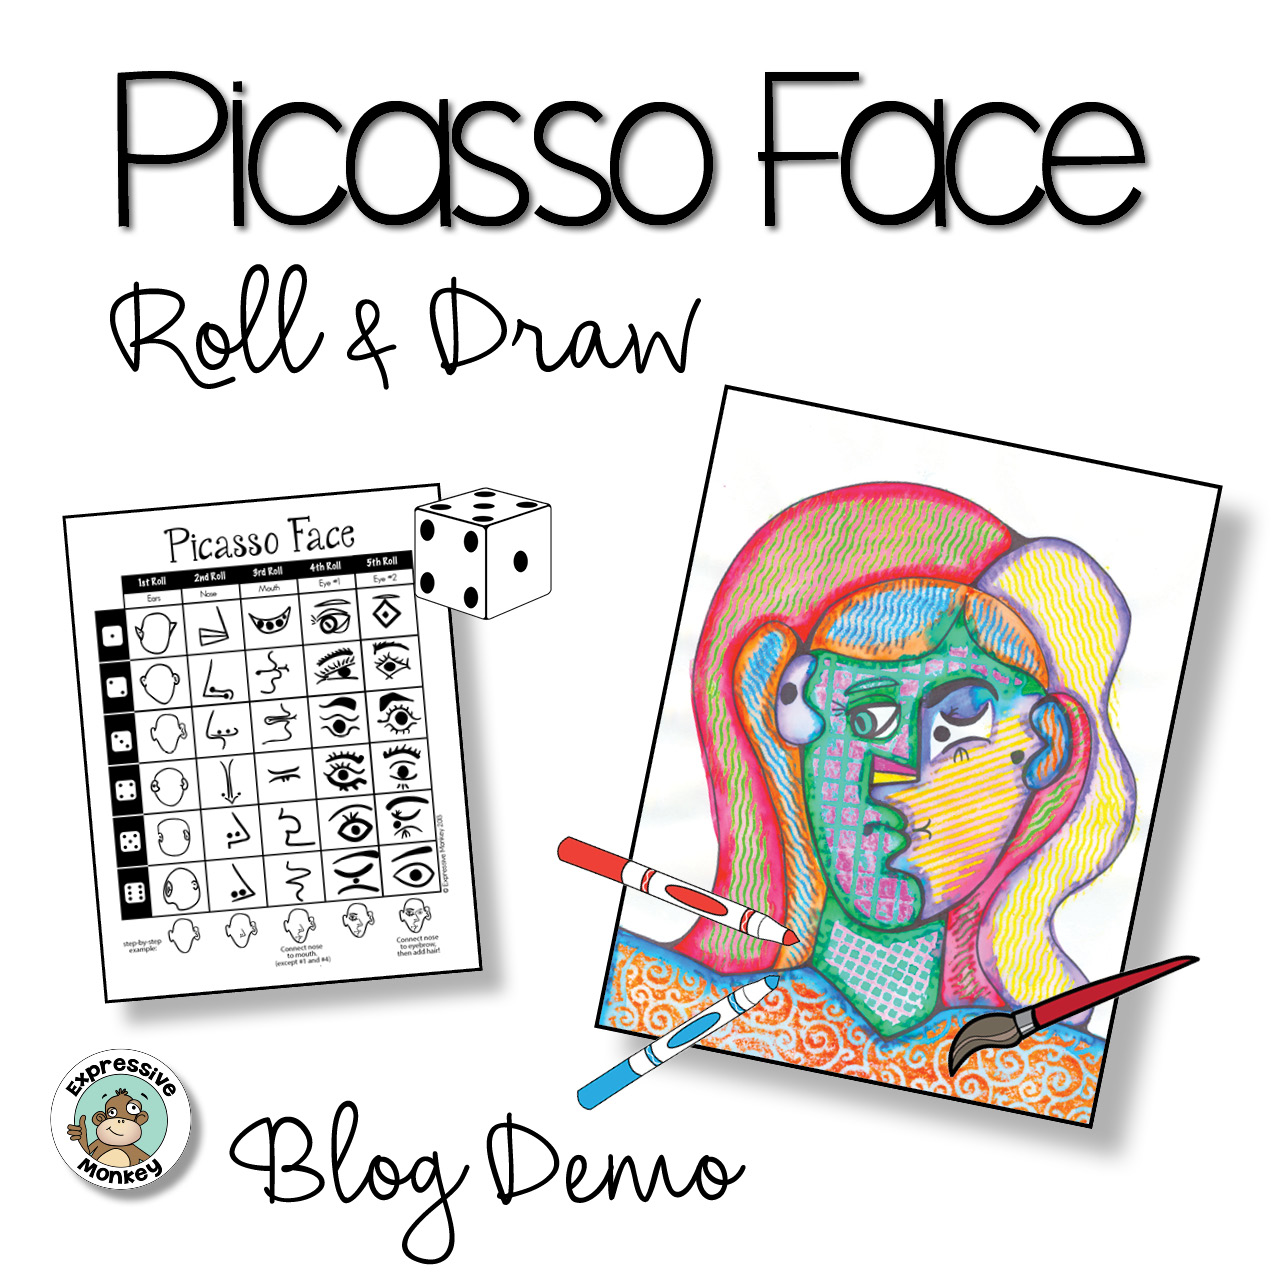 Picasso Face Demonstration